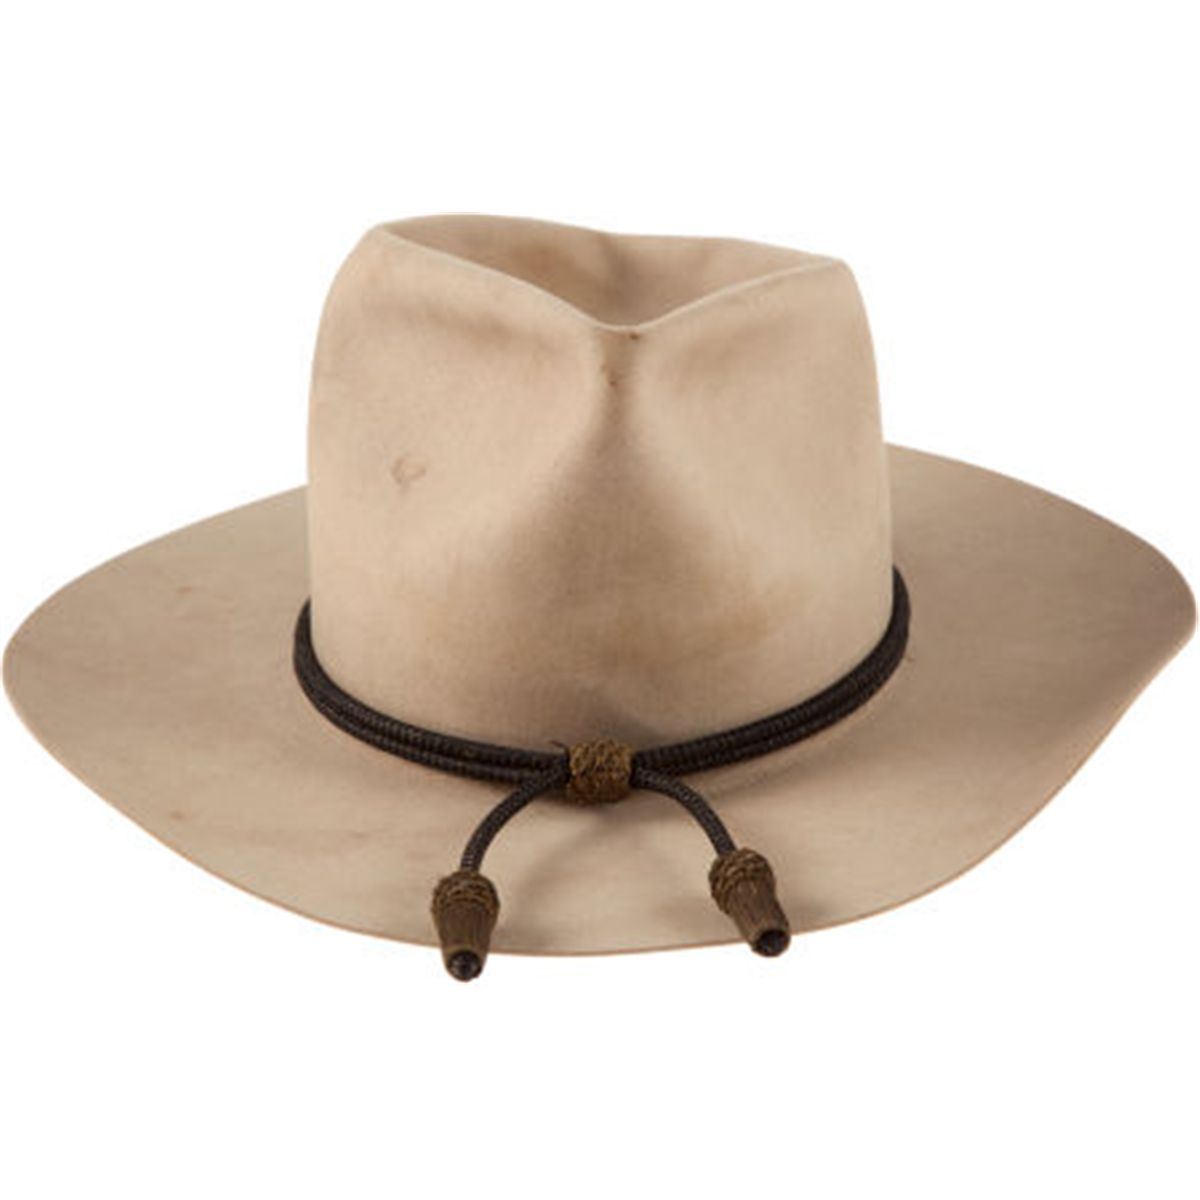 bf317b62f A Stetson Cowboy Hat from